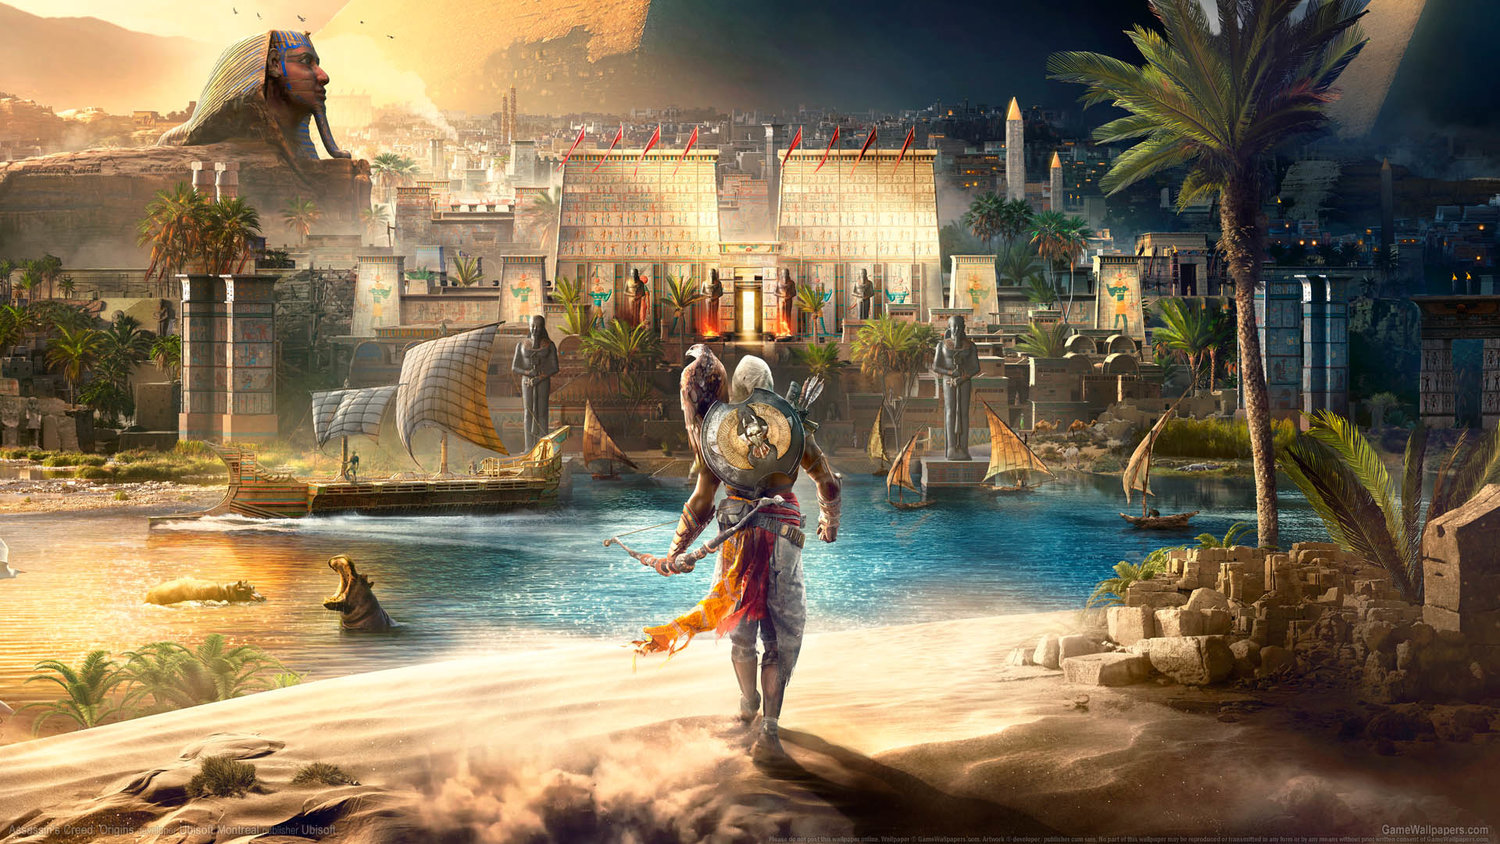 b465c002560 Here s Some Official Assassin s Creed Origins Merchandise You Don t Want To  Miss — GameTyrant